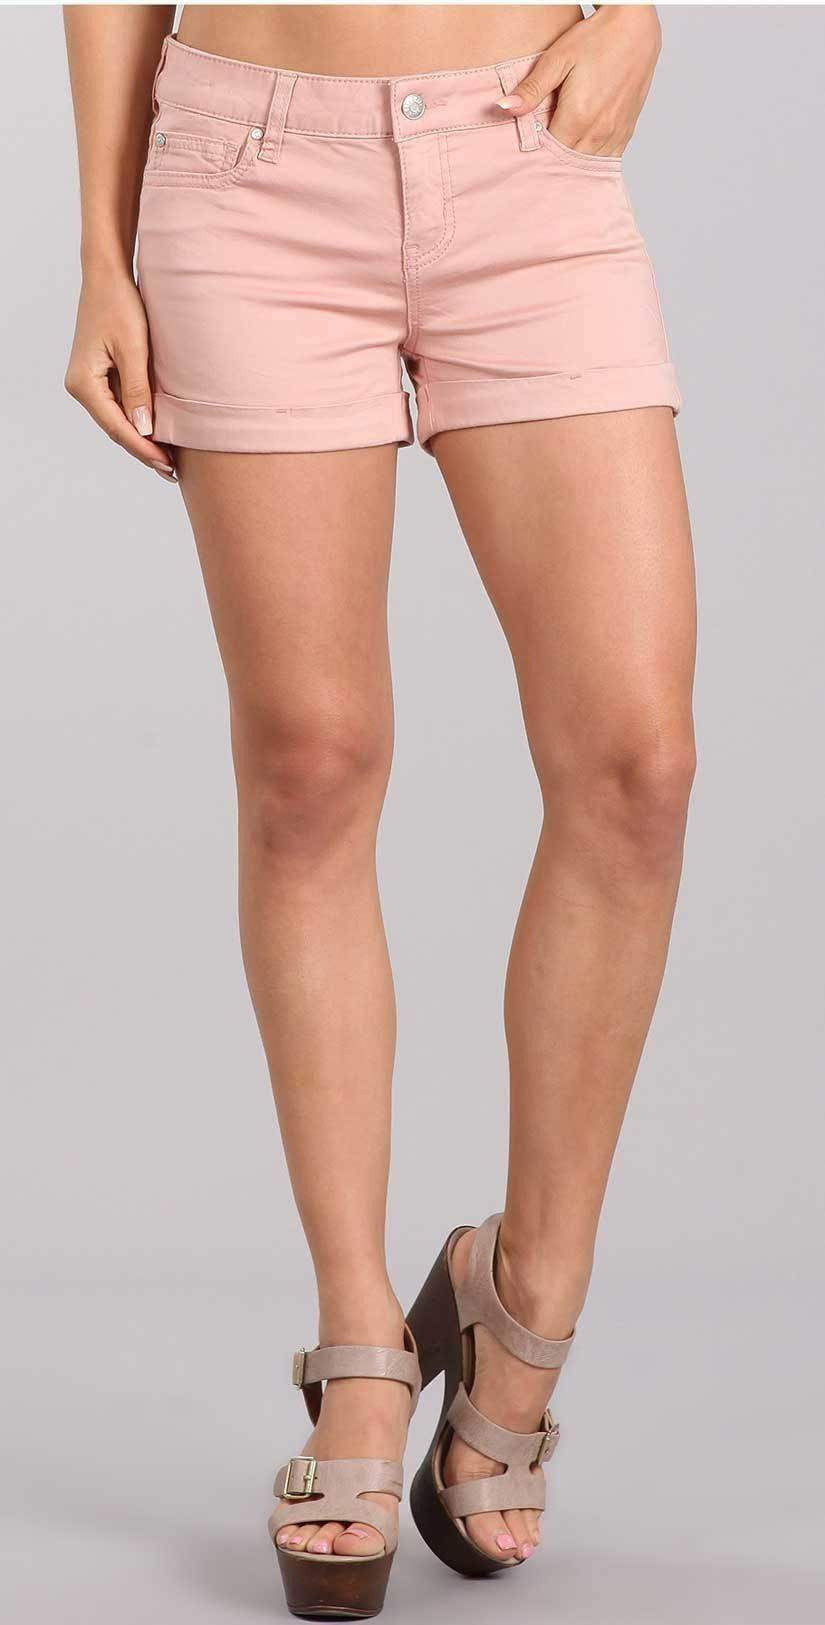 "Celebrity Pink Jean 3"" Mid Rise Shorts in Misty Rose CJ3050Z35:"